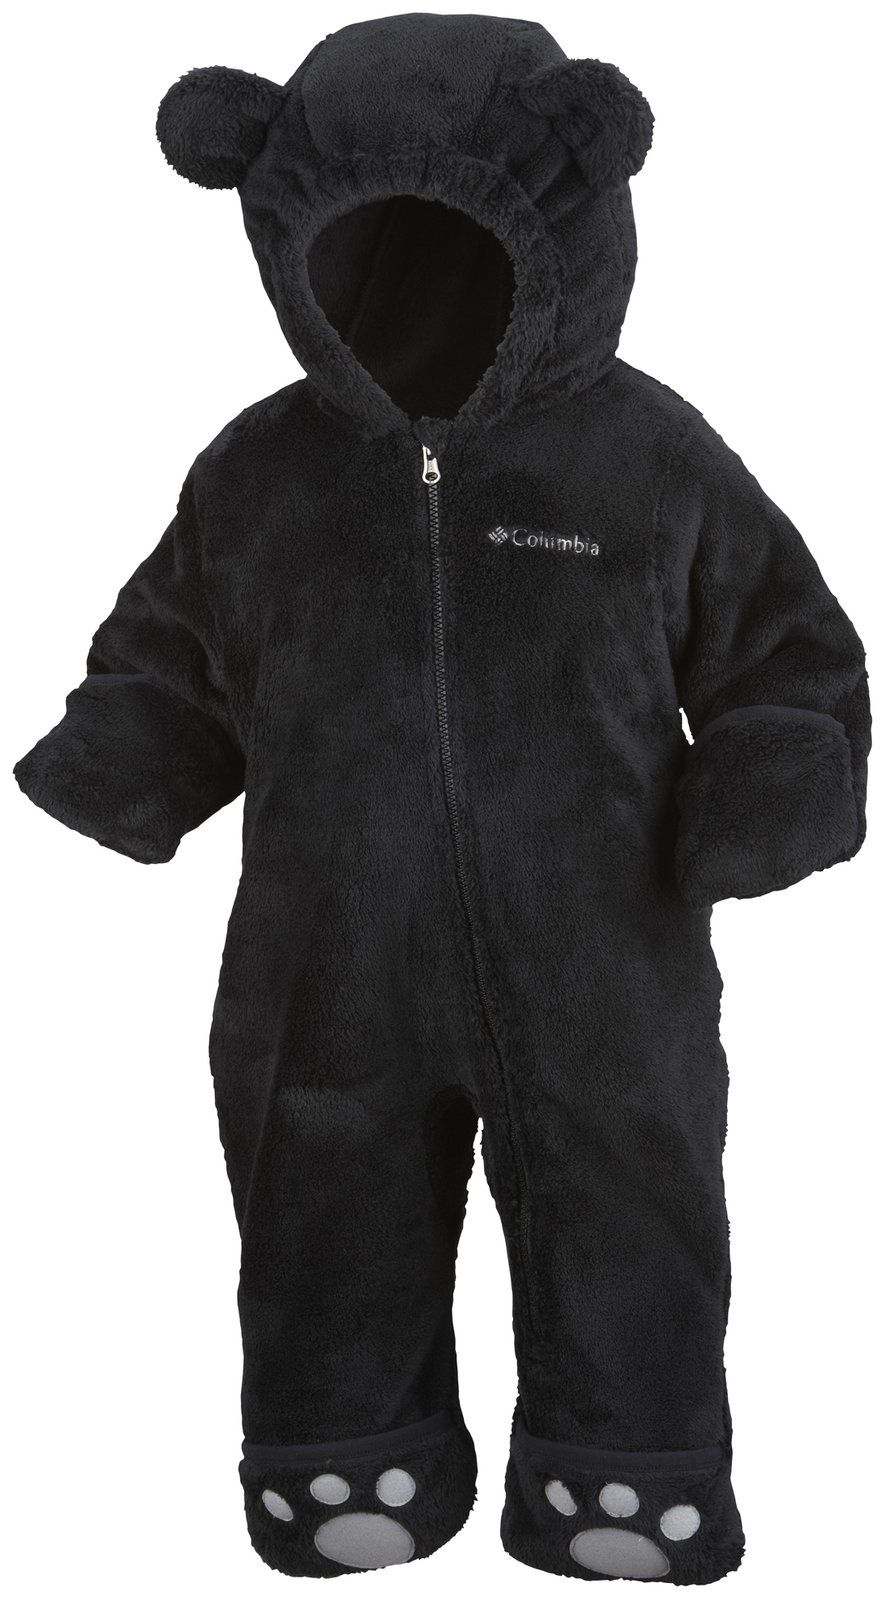 0b99c283b4cf Columbia Sportswear Fox Baby - Best Price